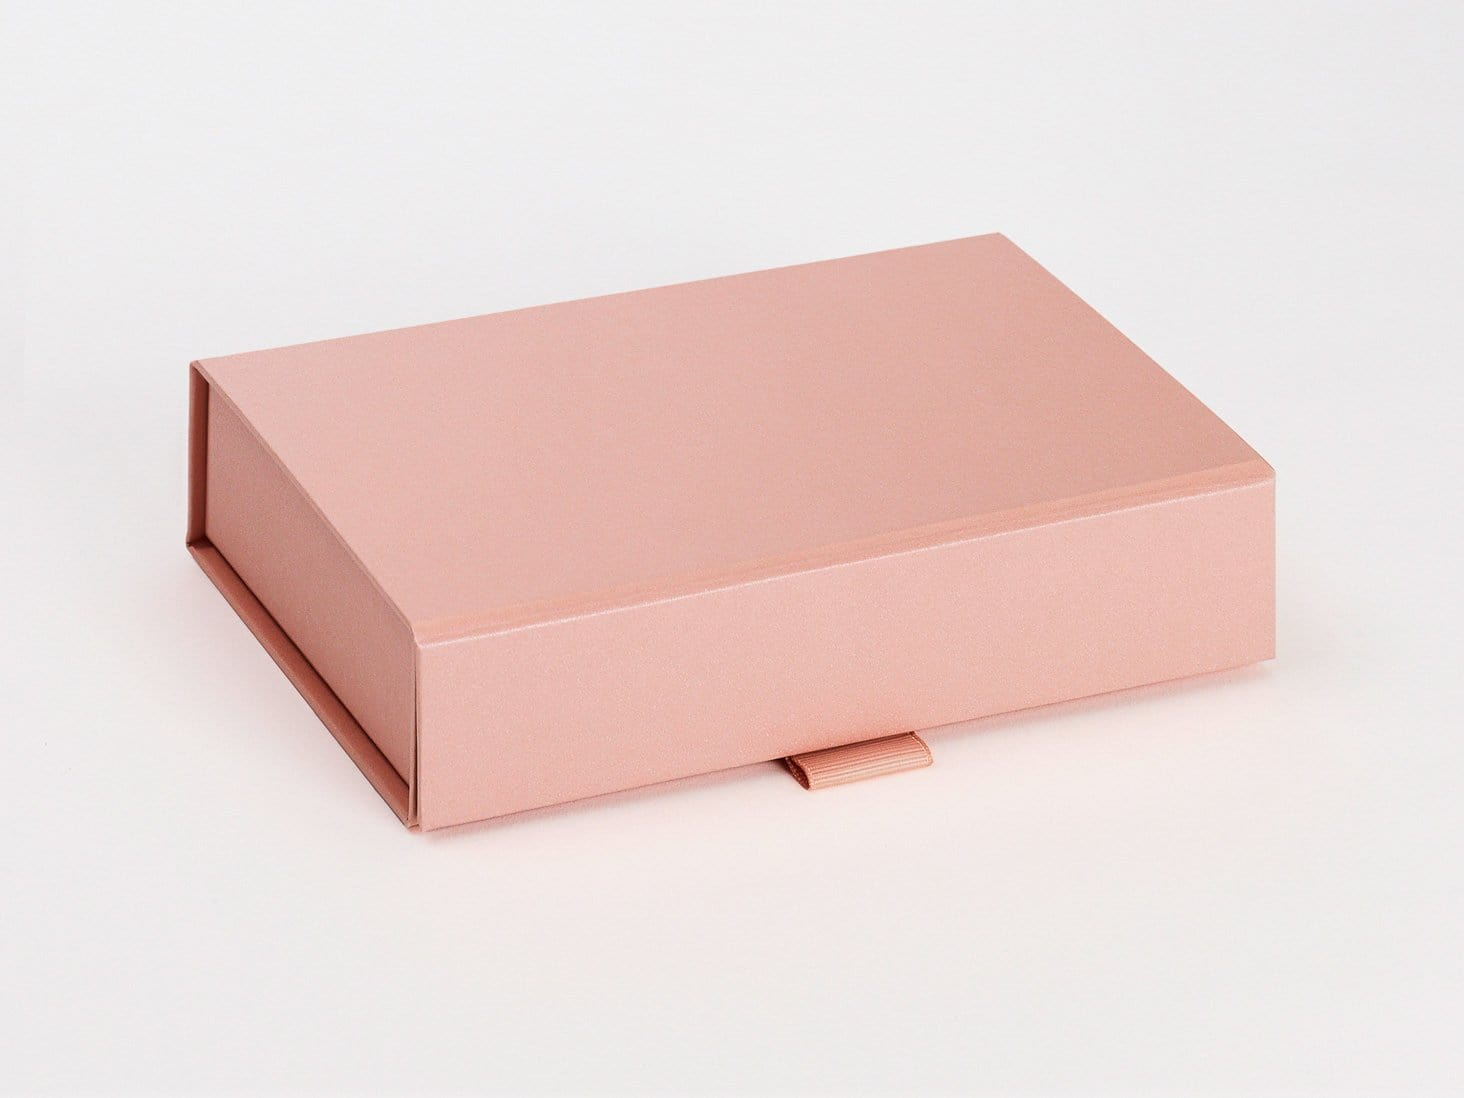 Rose Gold A6 Shallow Gift Box Assembled